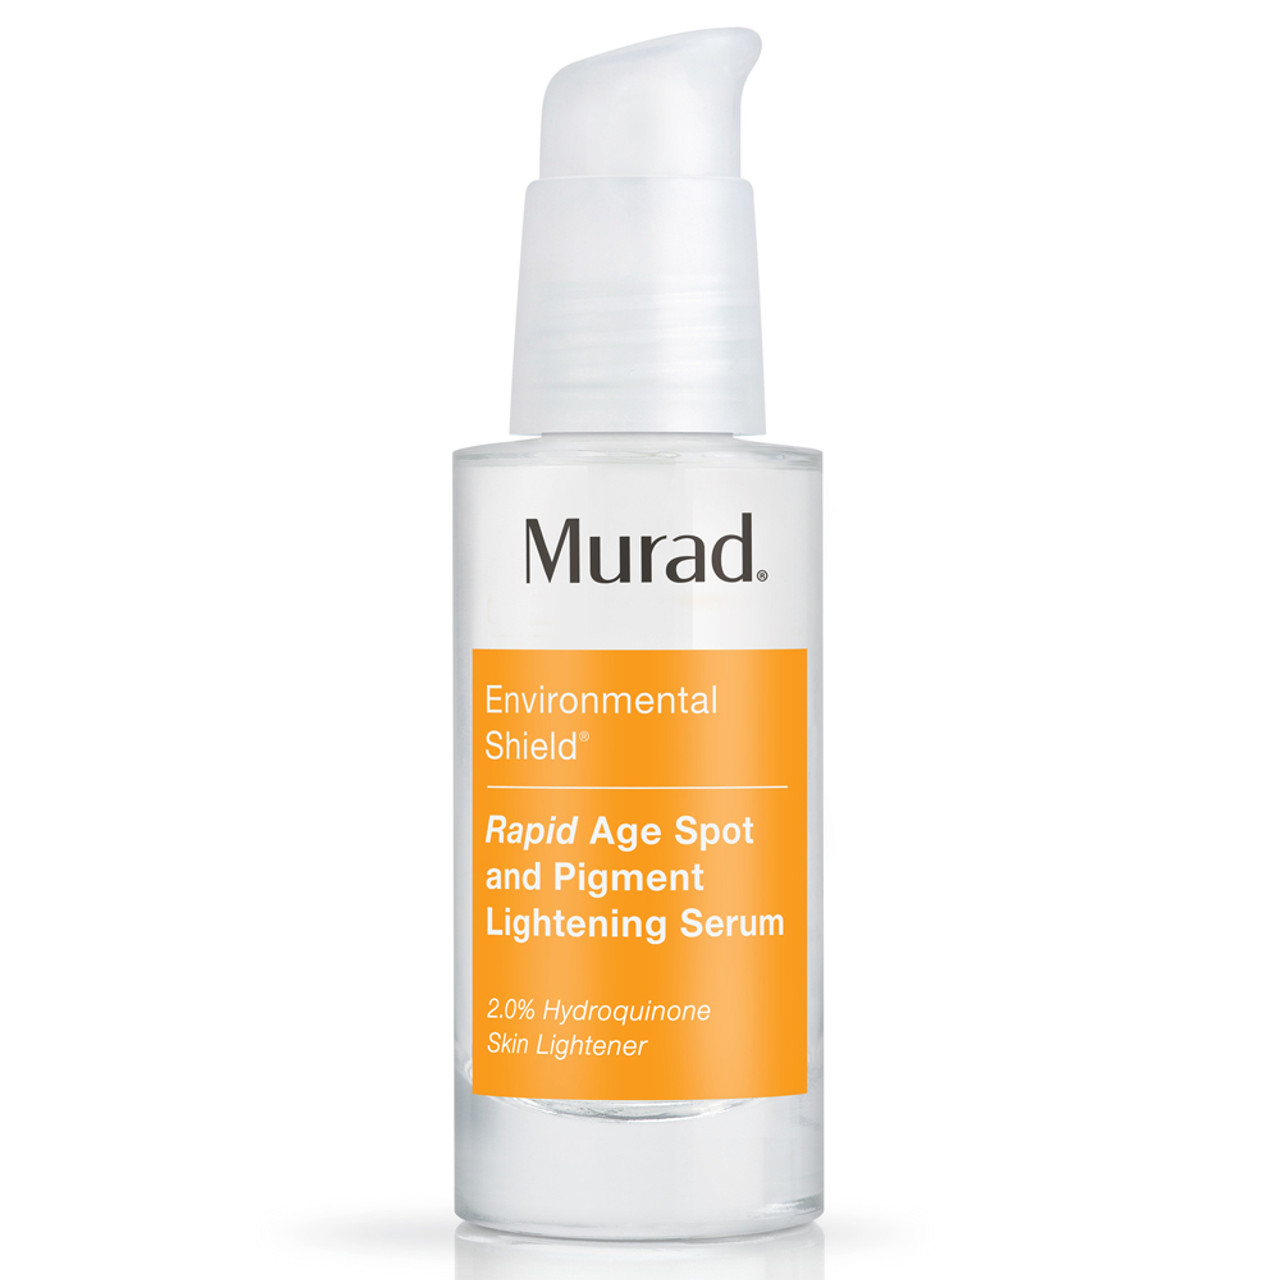 Murad Environmental Shield™ Rapid Age Spot & Pigment Lightening Serum